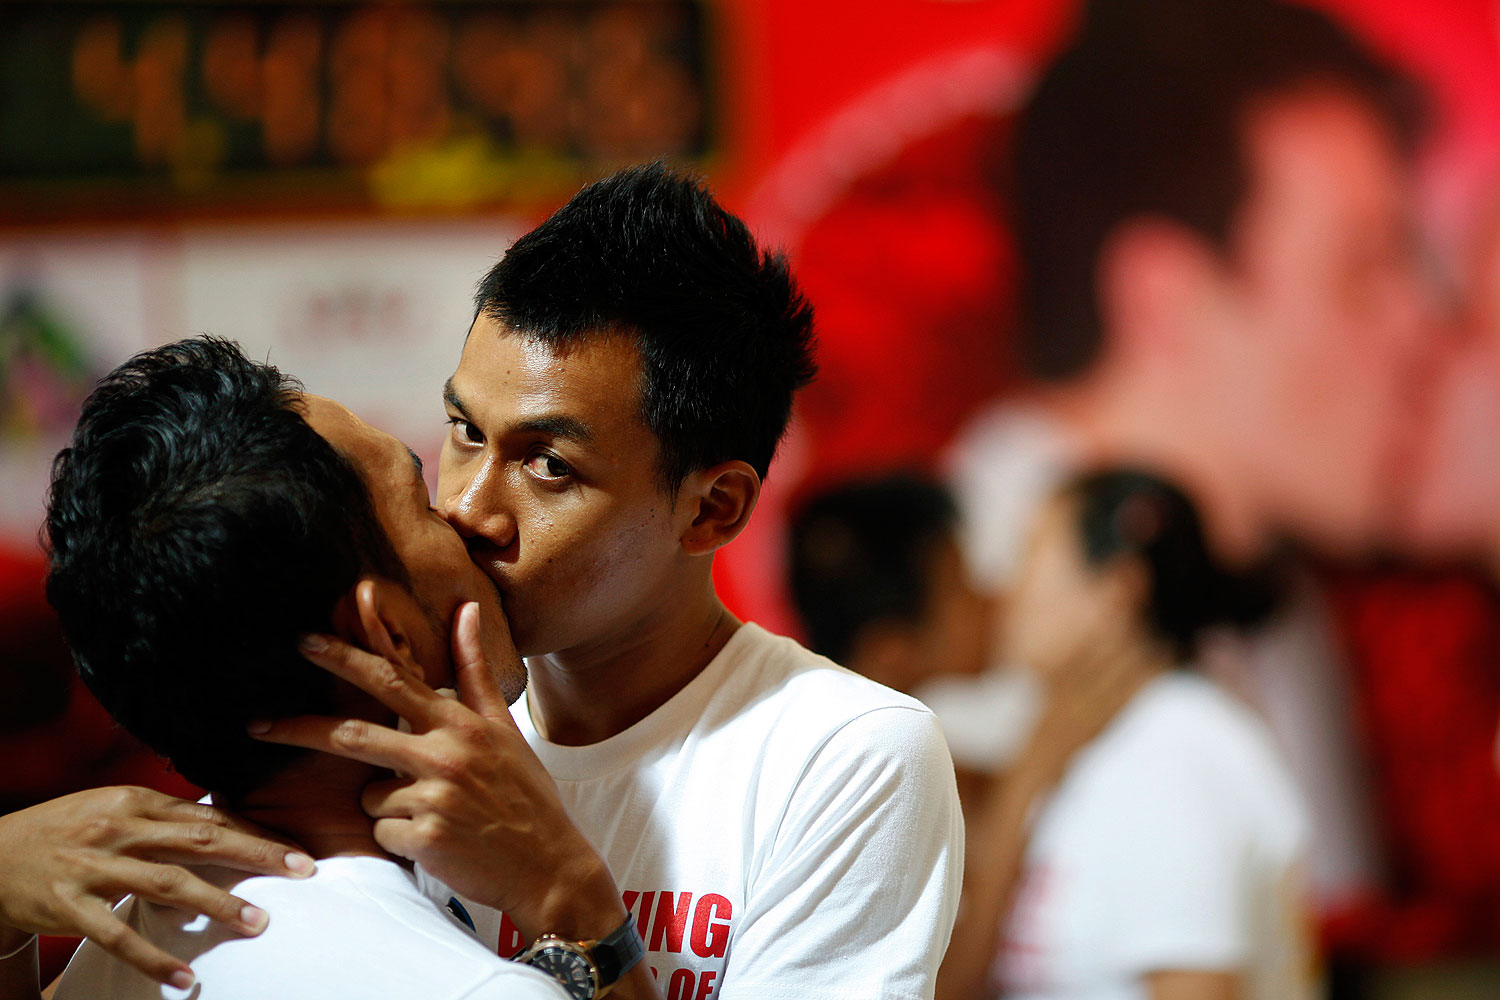 Two men kiss among straight couples participating in a longest continuous kiss competition in Pattaya, Thailand, in Feb. 2012